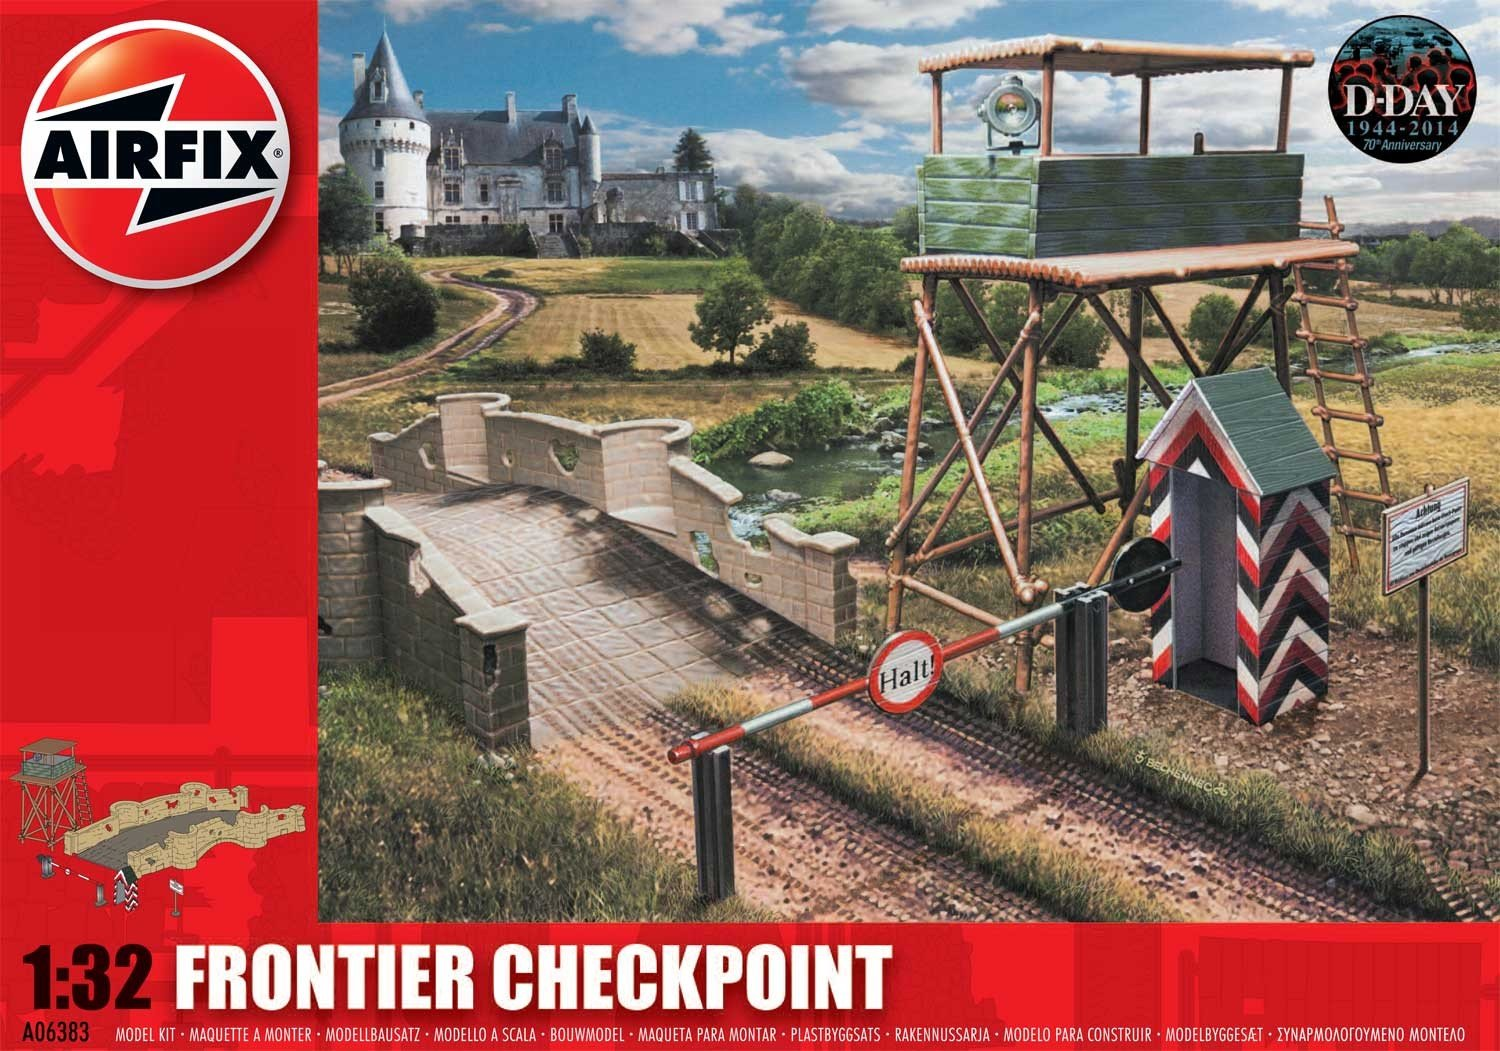 Airfix 1:32 Scale Frontier Checkpoint Modelkit